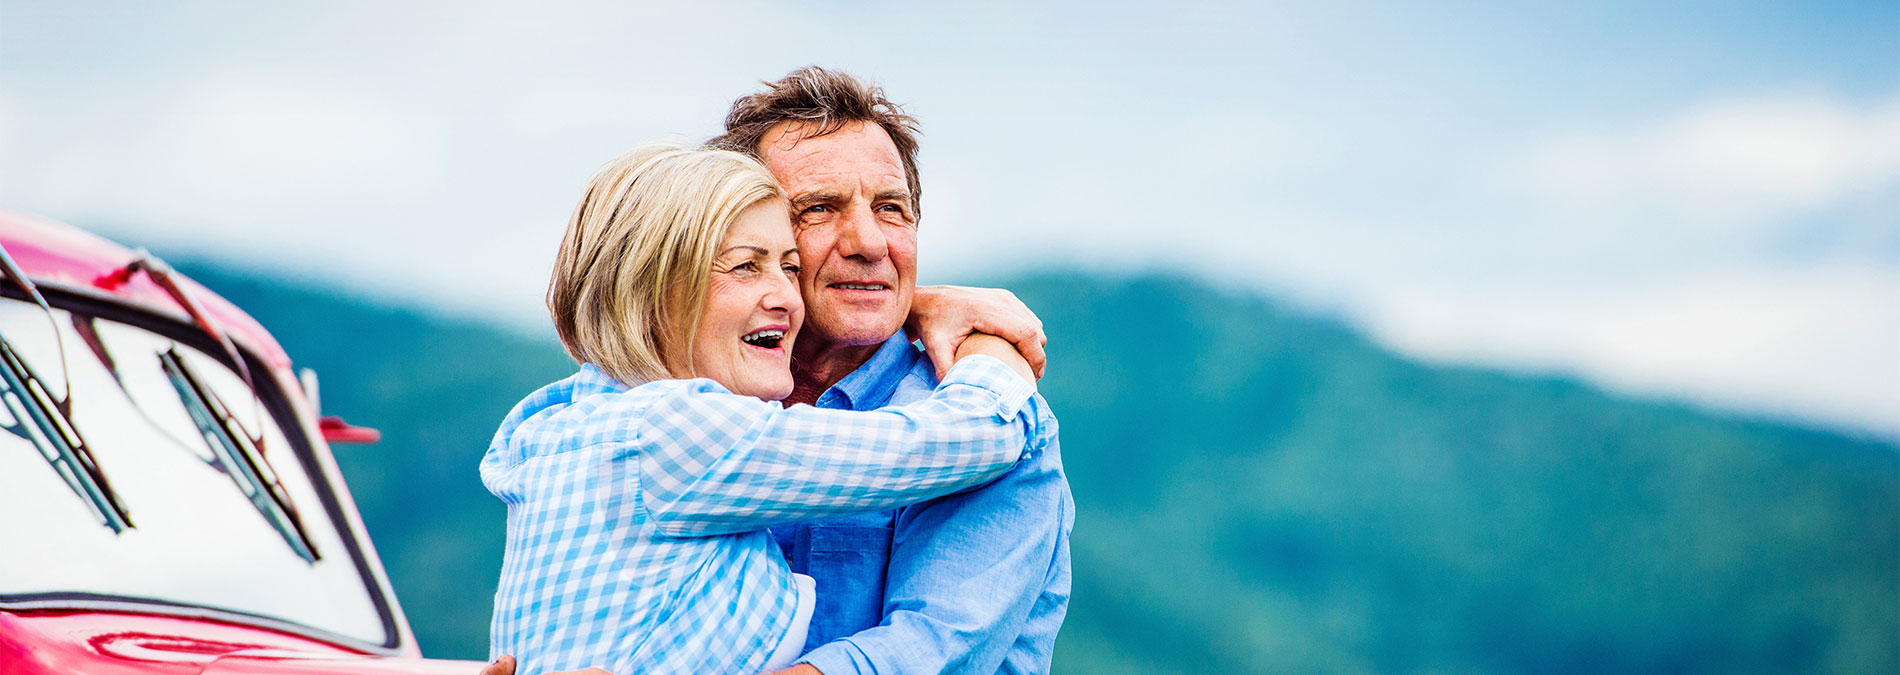 sabattus senior personals We are more than just a dating site, we will find compatible matches for you visit our site to find out more or read users reviews.